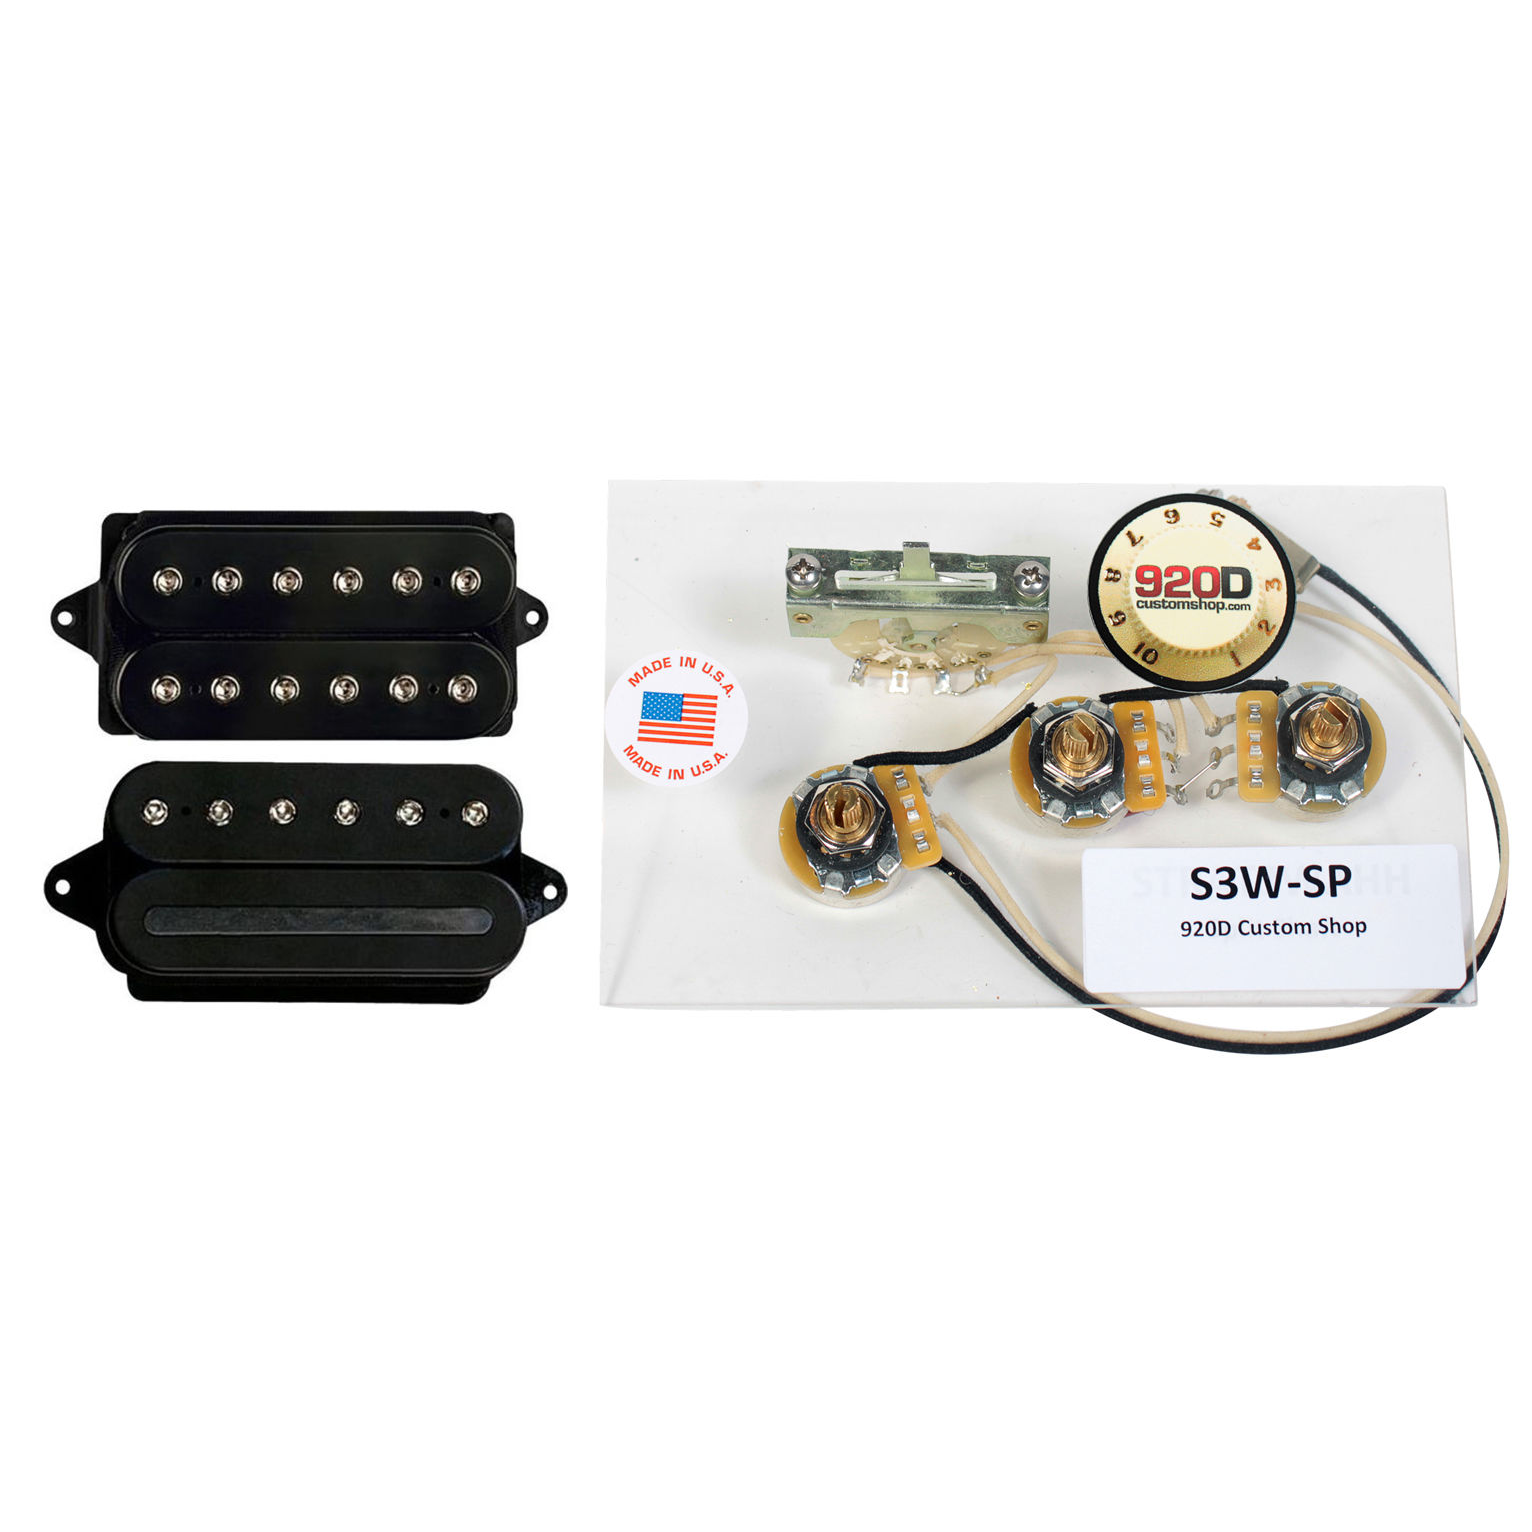 Dimarzio Wiring Harness Just Another Diagram Blog Seymour Duncan Everything Axe John Petrucci Guitar Pickup Set Liquifire Crunch Lab Rh Walmart Com Color Code